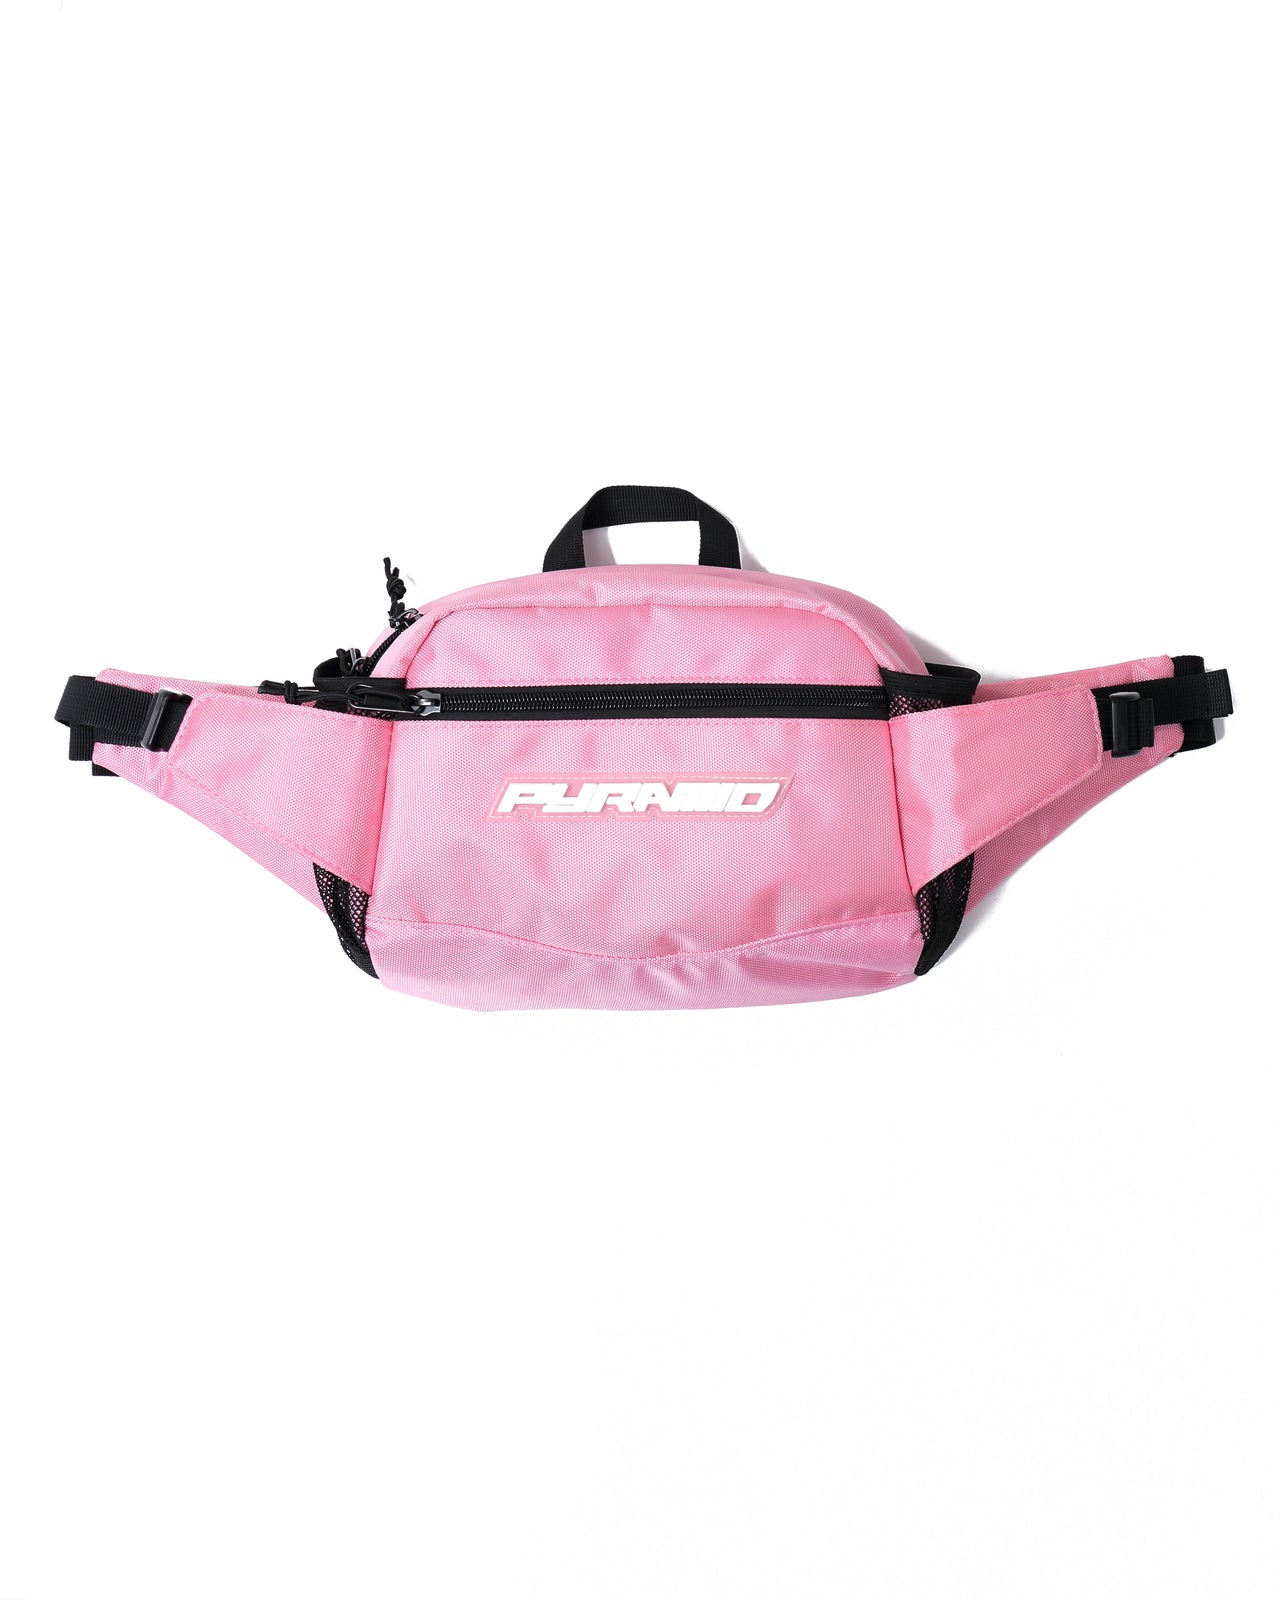 TECH SLING BAG - Colors: PINK